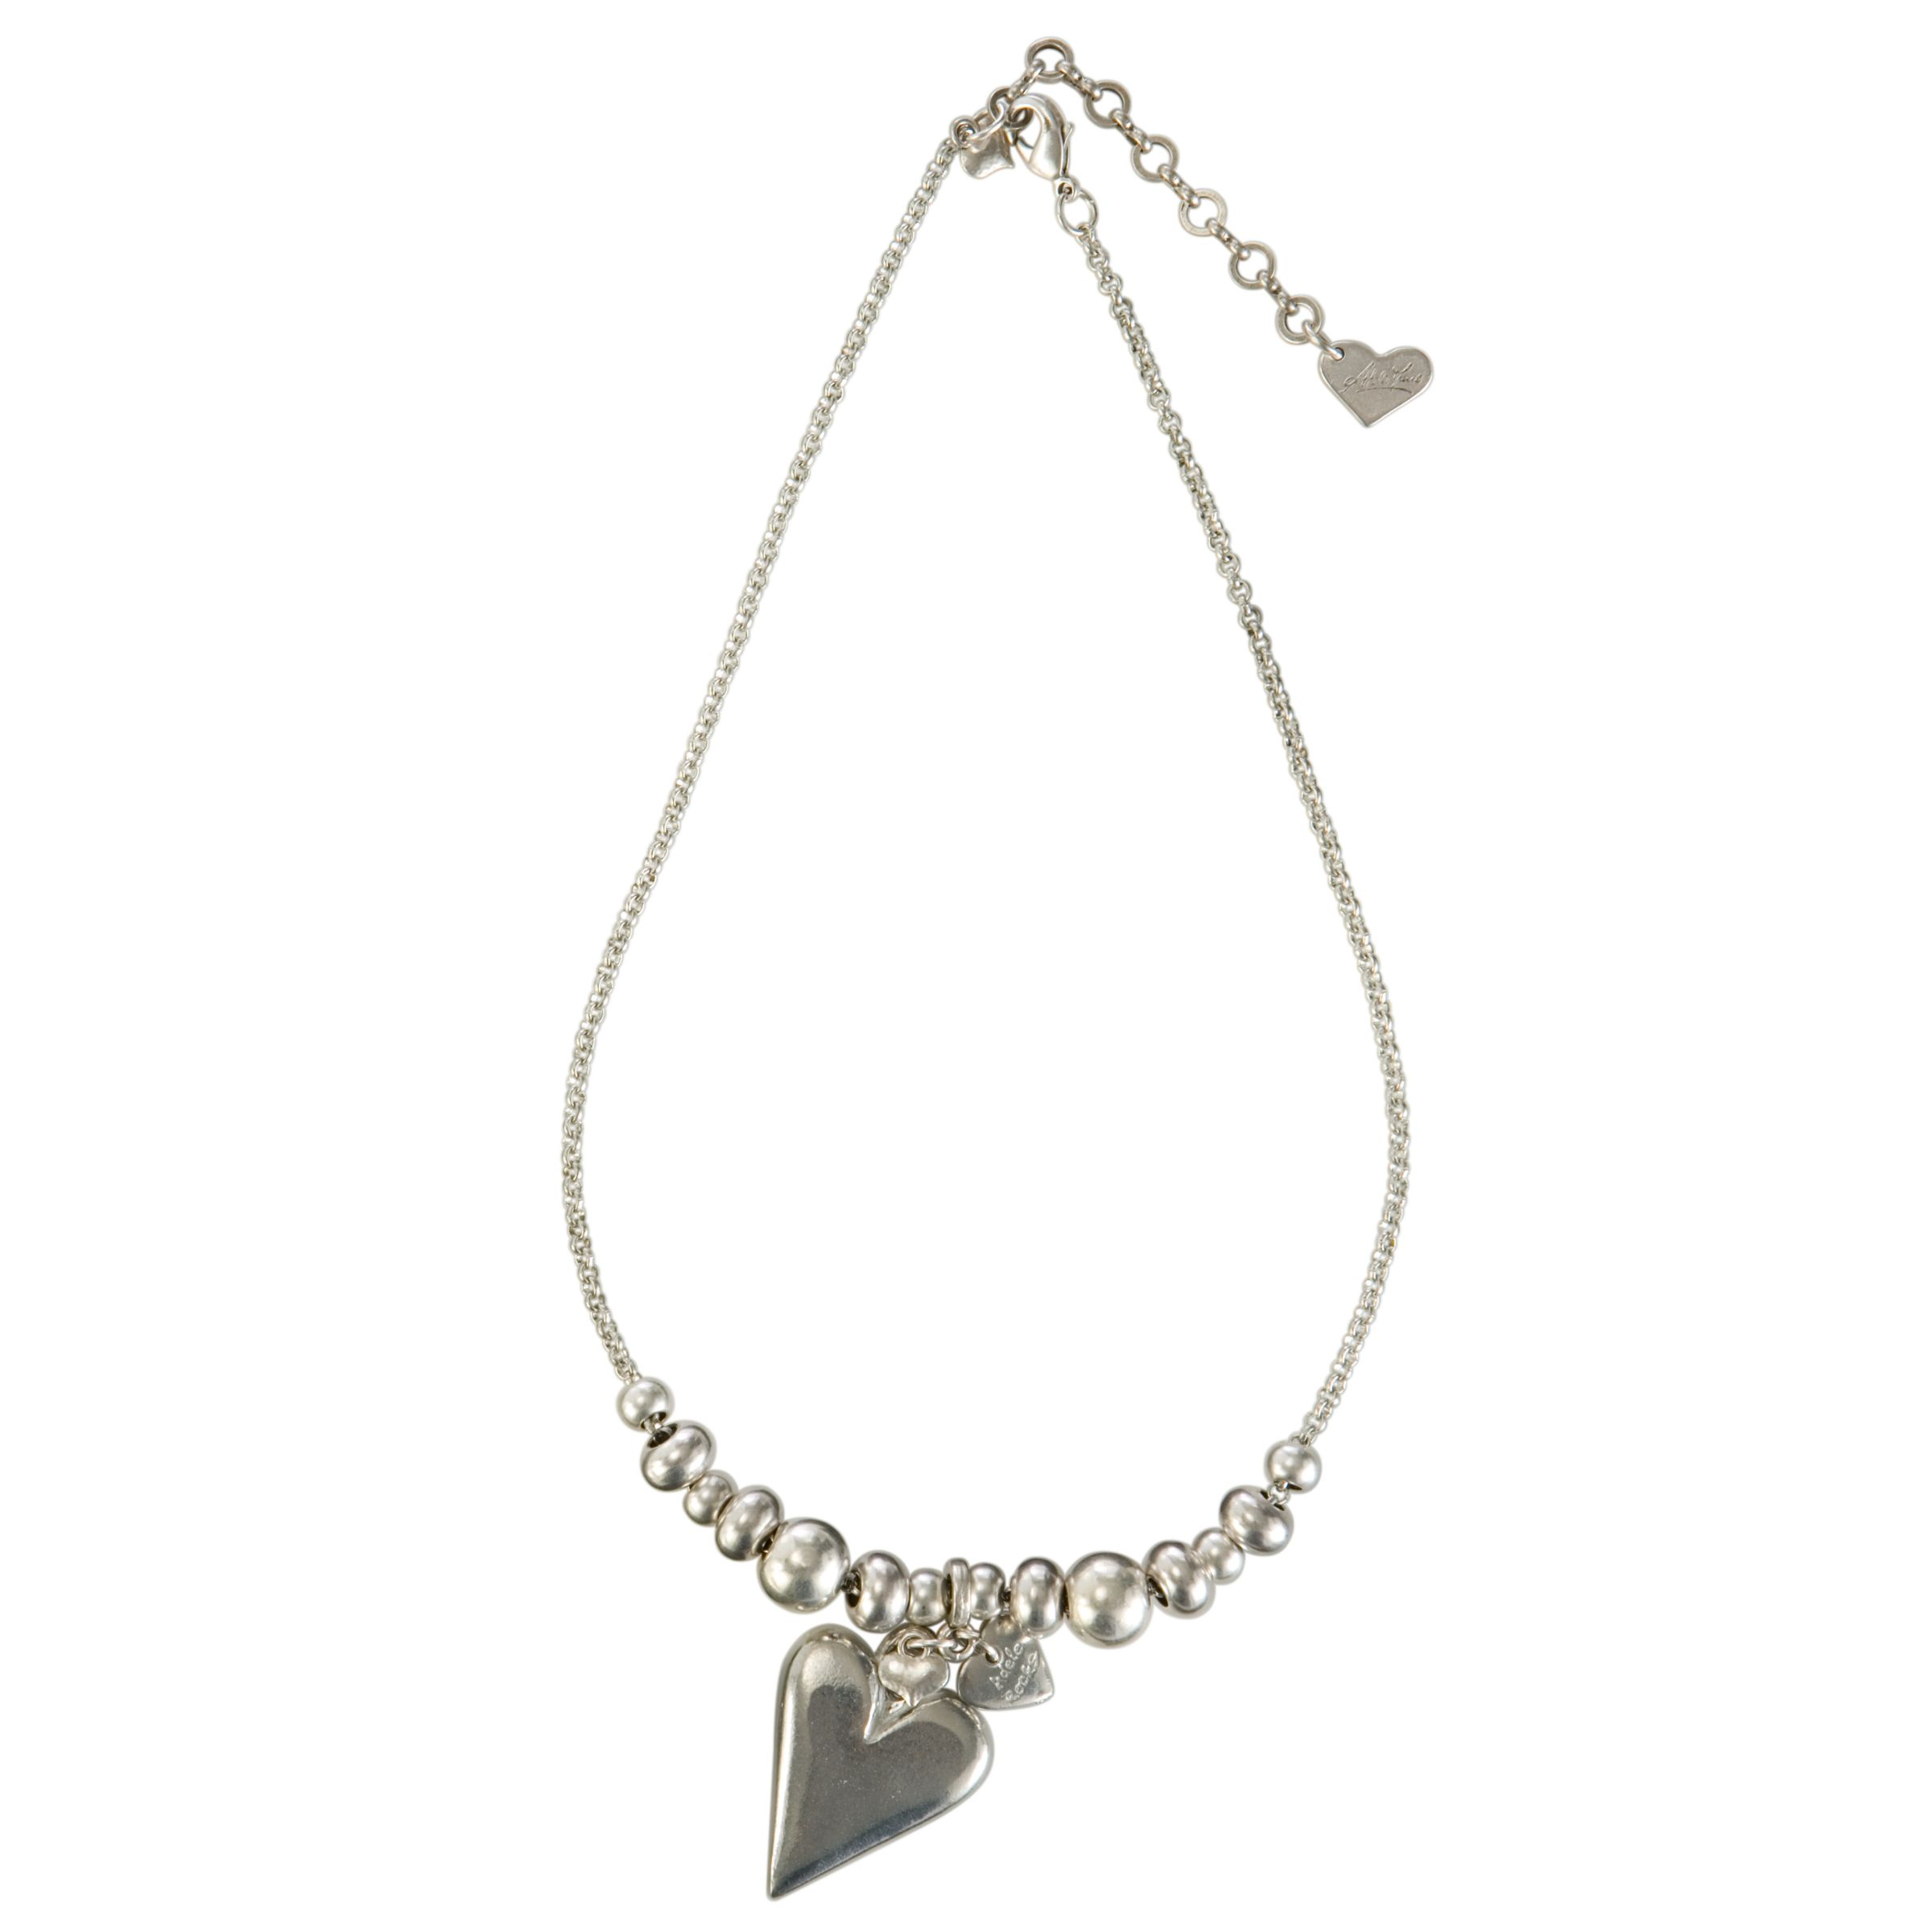 Adele Marie Silver Plated Heart Charm Necklace